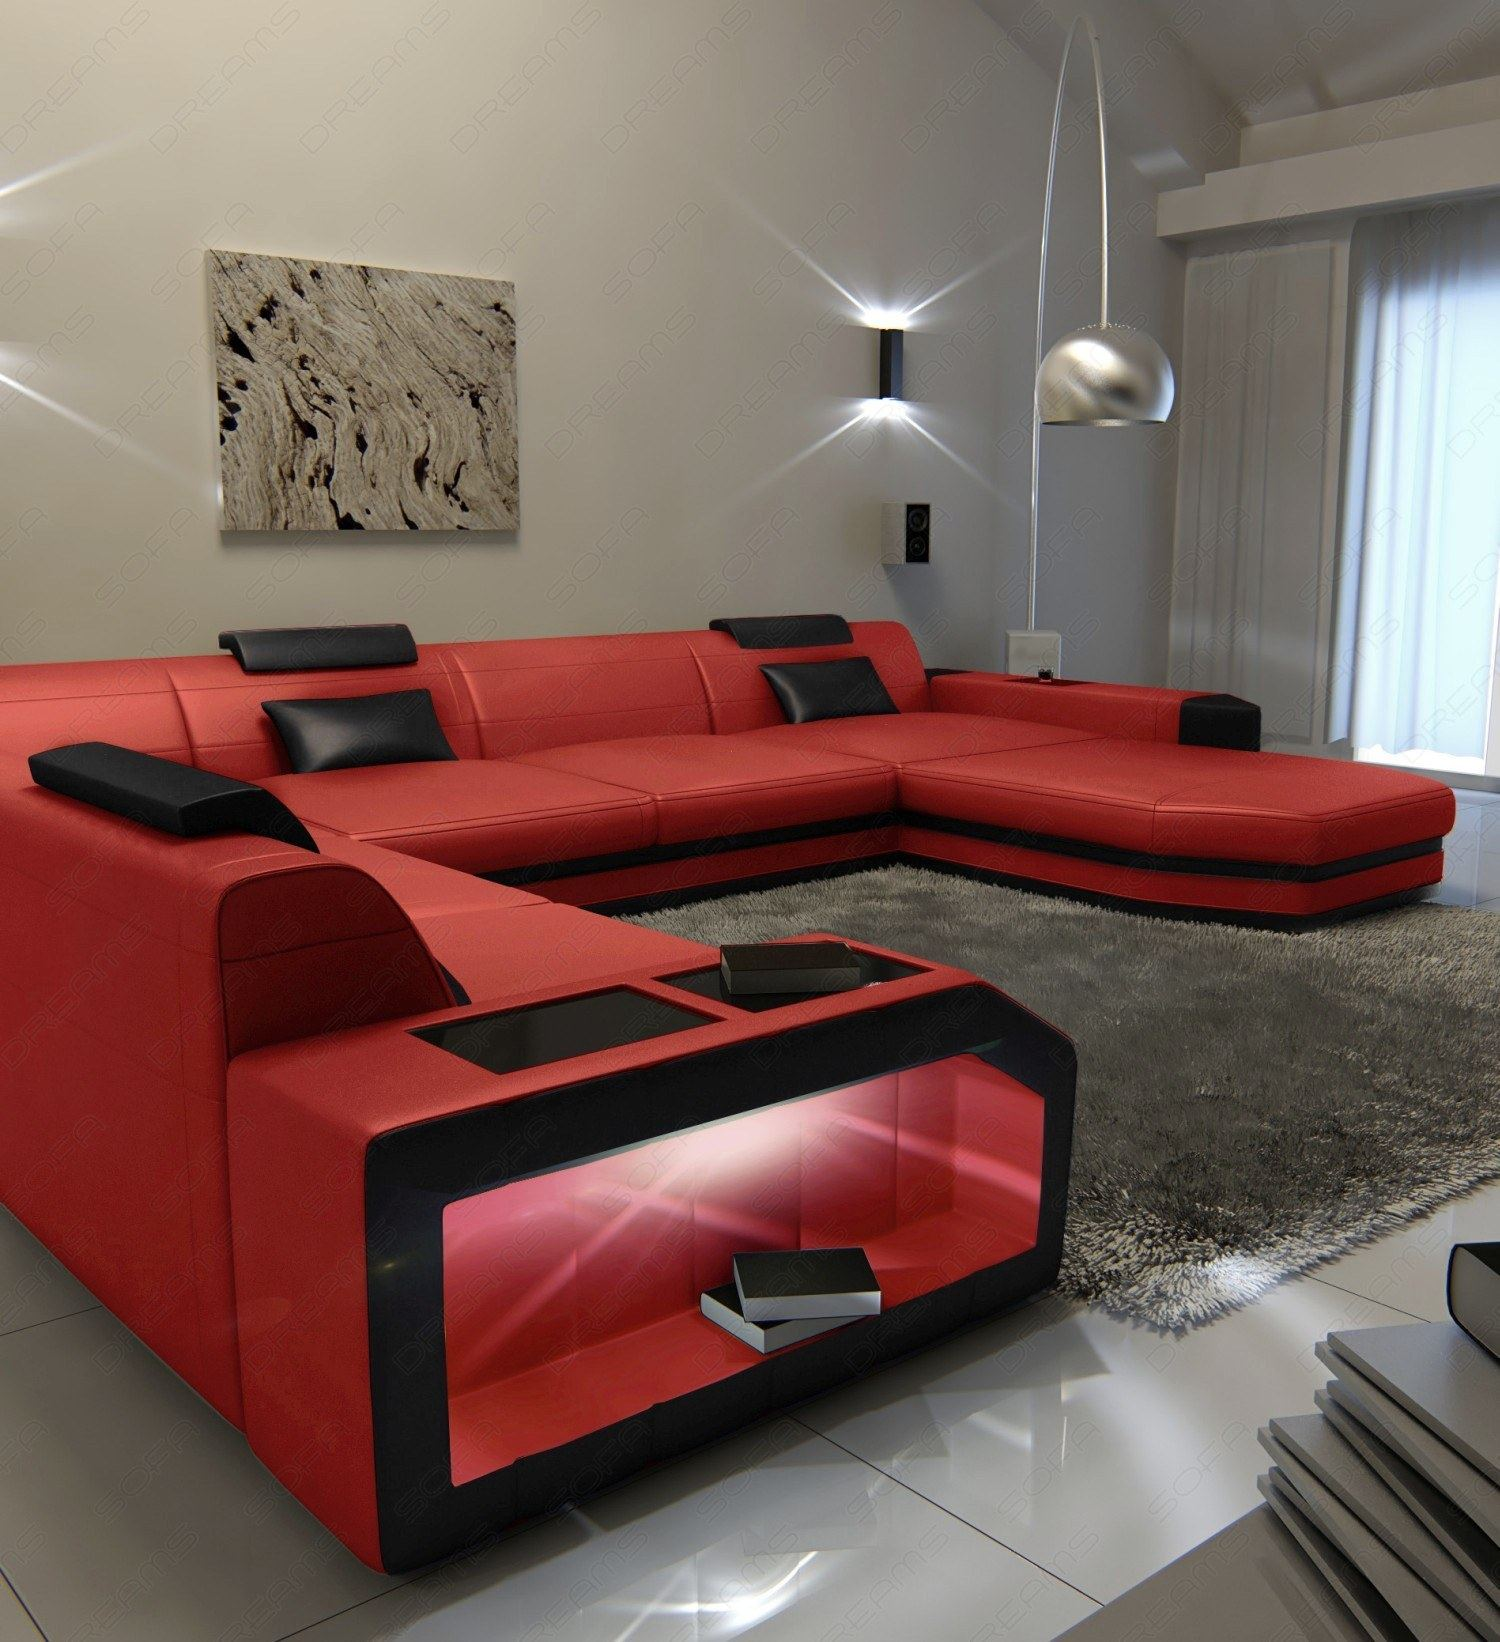 Sofa Xxl Detalles Acerca De Big Sectional Leather Sofa Dallas Xxl With Led Lights Remote European Style